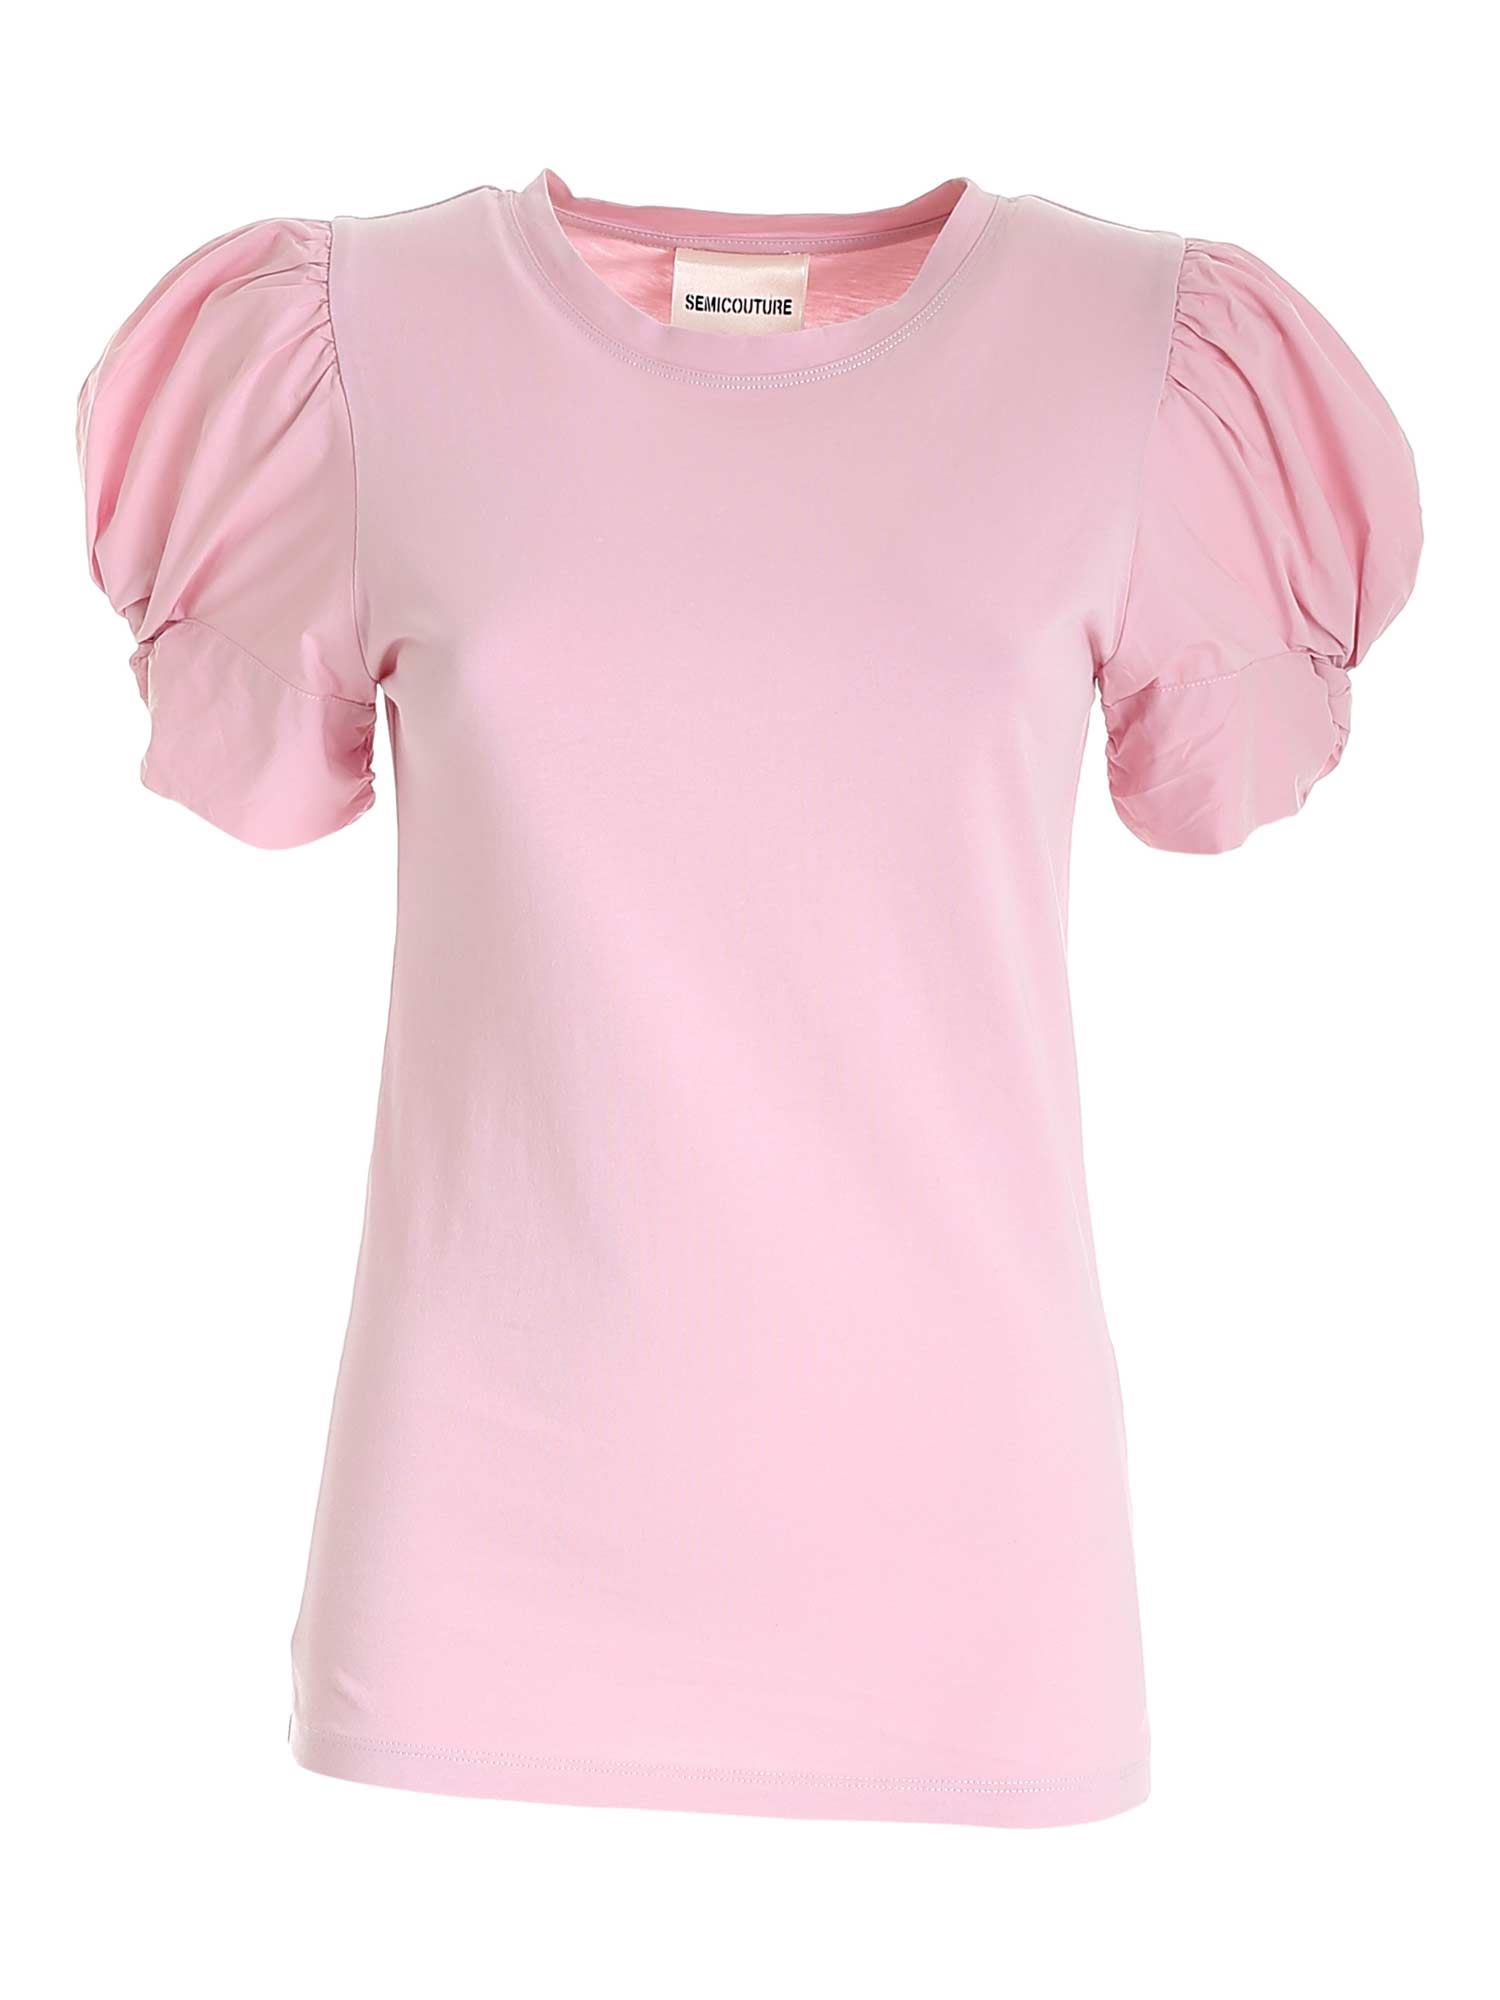 Semicouture Cottons ADELE T-SHIRT IN PINK